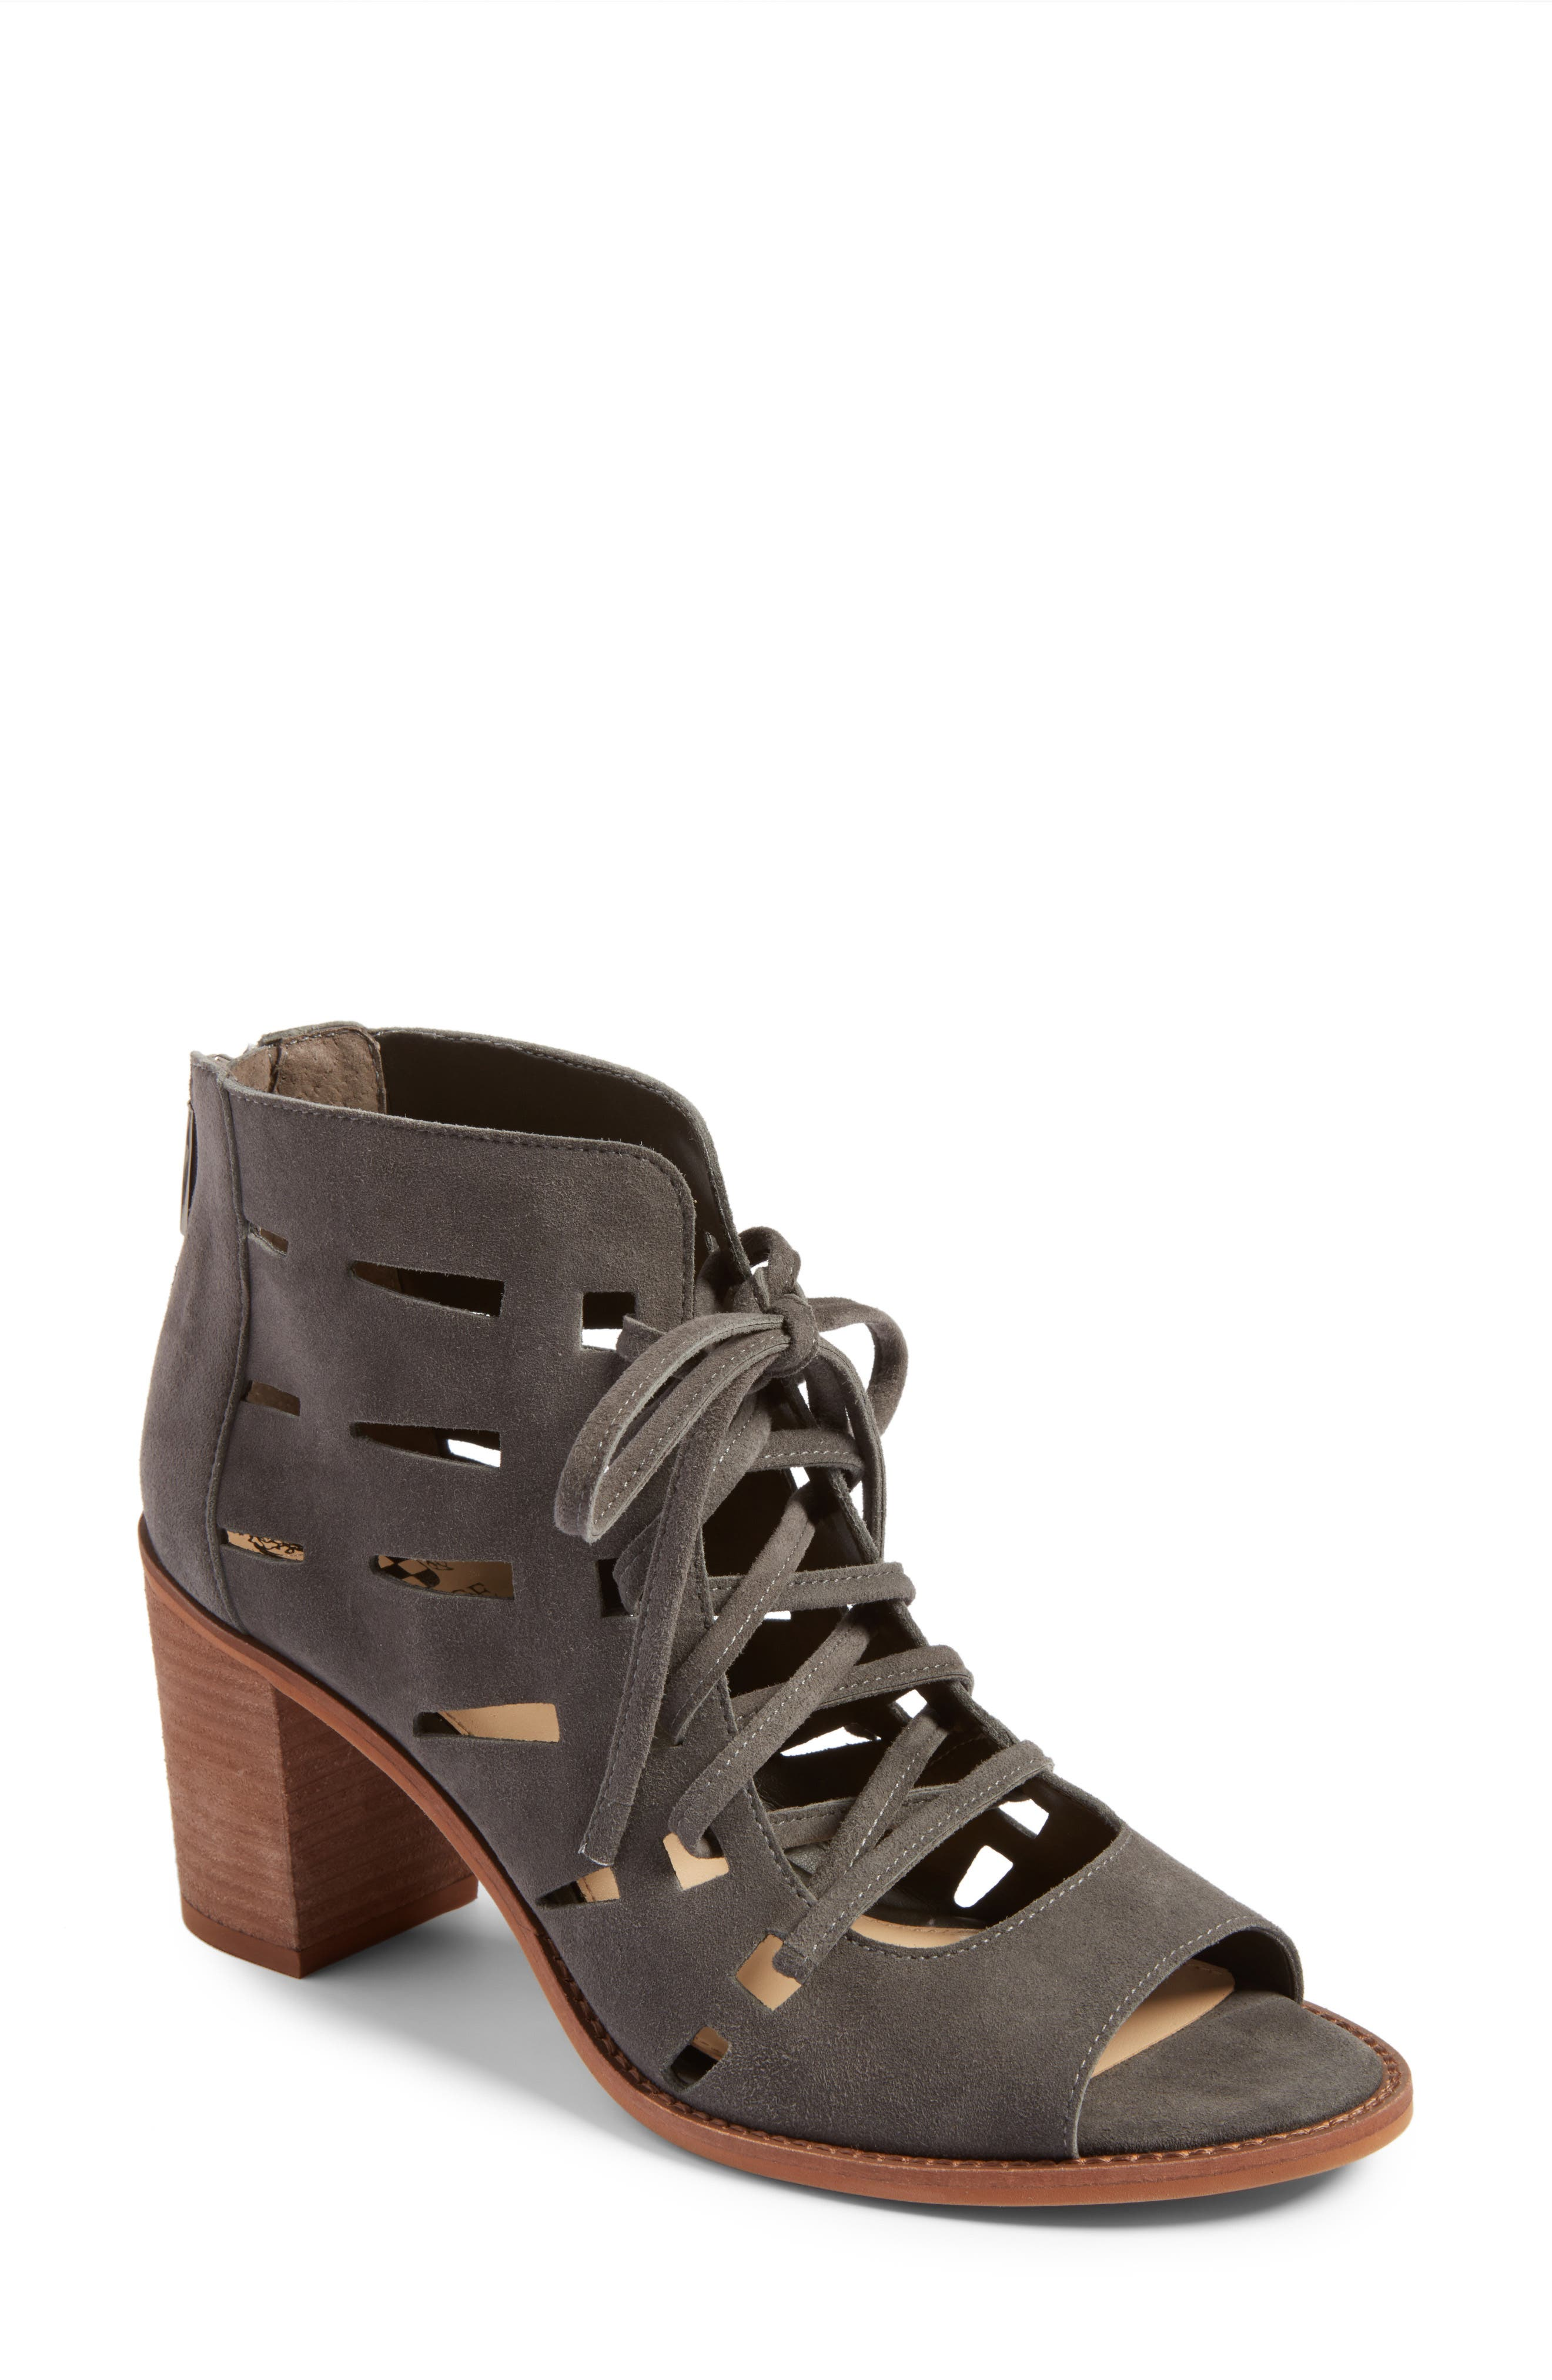 Main Image - Vince Camuto Tressa Perforated Lace-Up Sandal (Women)